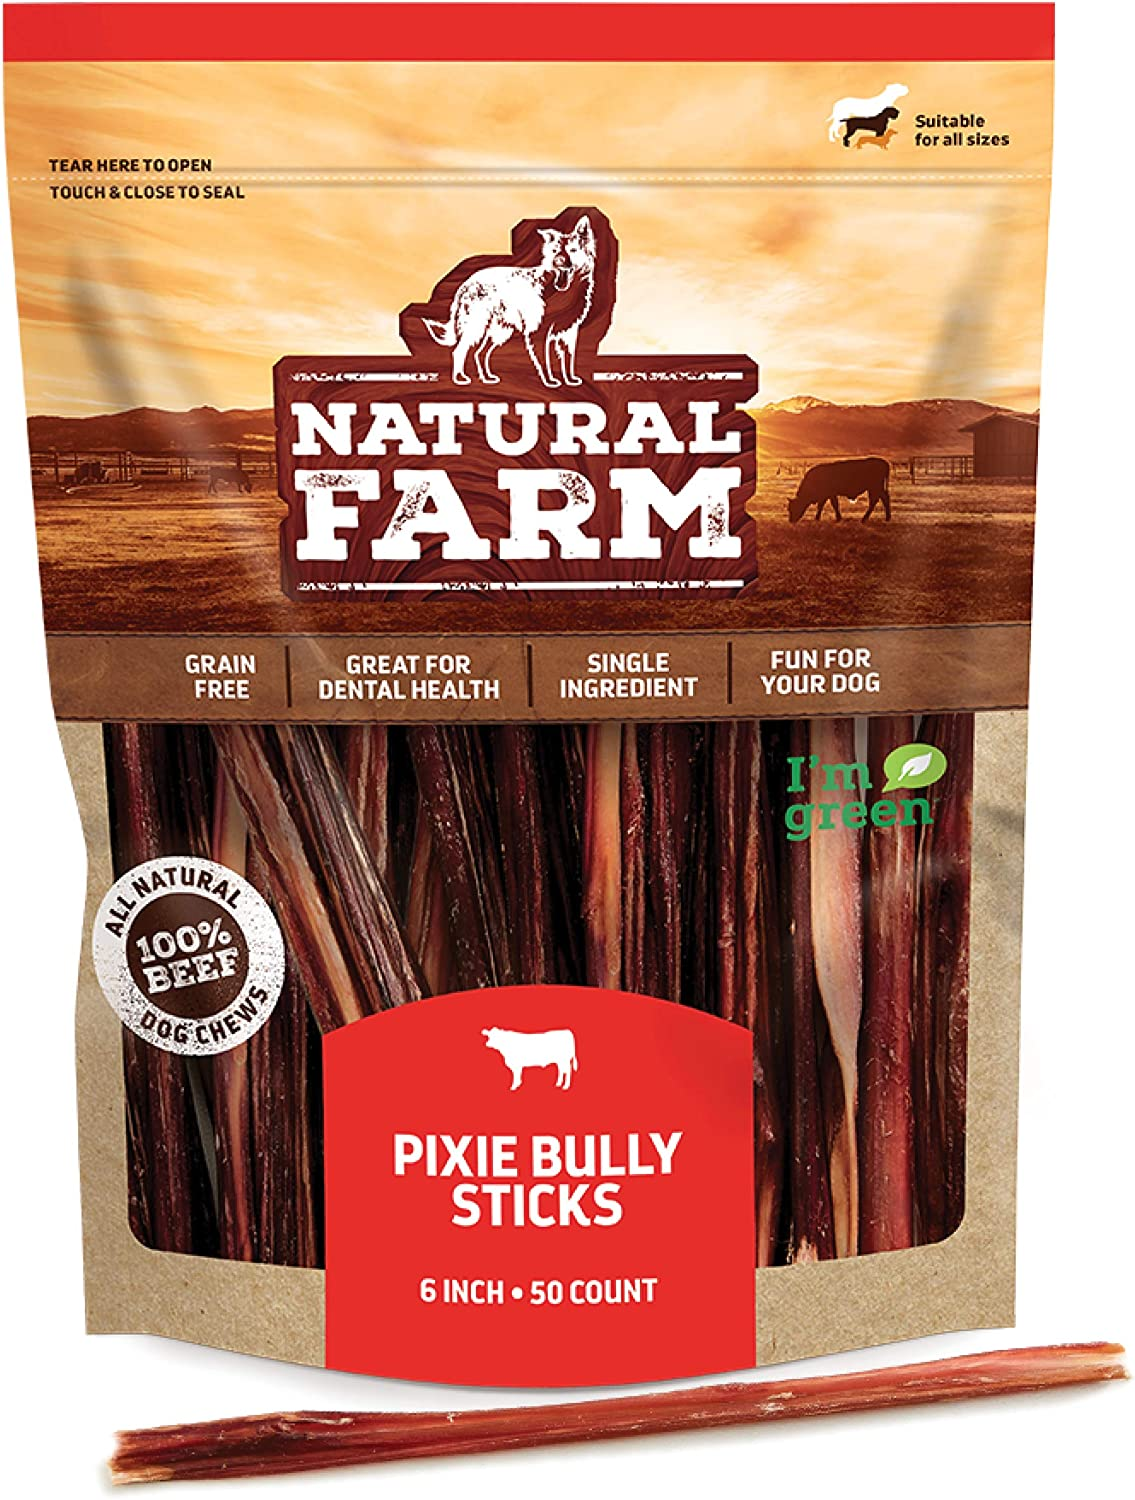 """Natural Farm Pup 6"""" Pixie Bully Skin Sticks (30 & 50-Pack), Extra-Thin, Hollow, Fast Chewing Pet Treats - Grain-Free, High Protein, Best Rawhide Alternative for All Small, Puppies or Senior Dogs"""